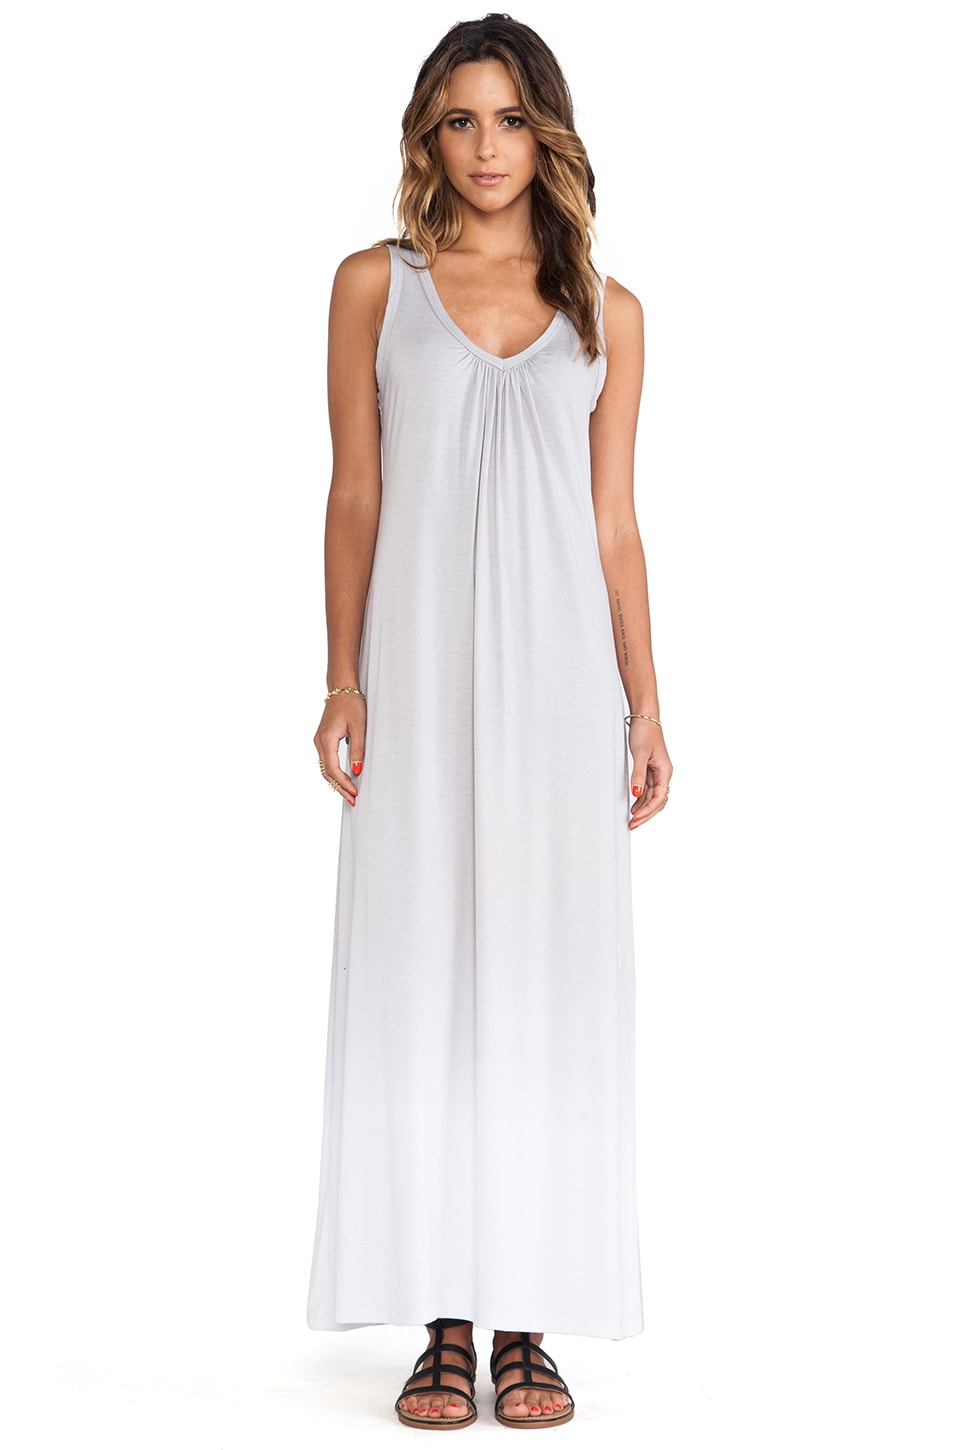 Saint Grace Seaside Maxi Dress in Pewter Ombre